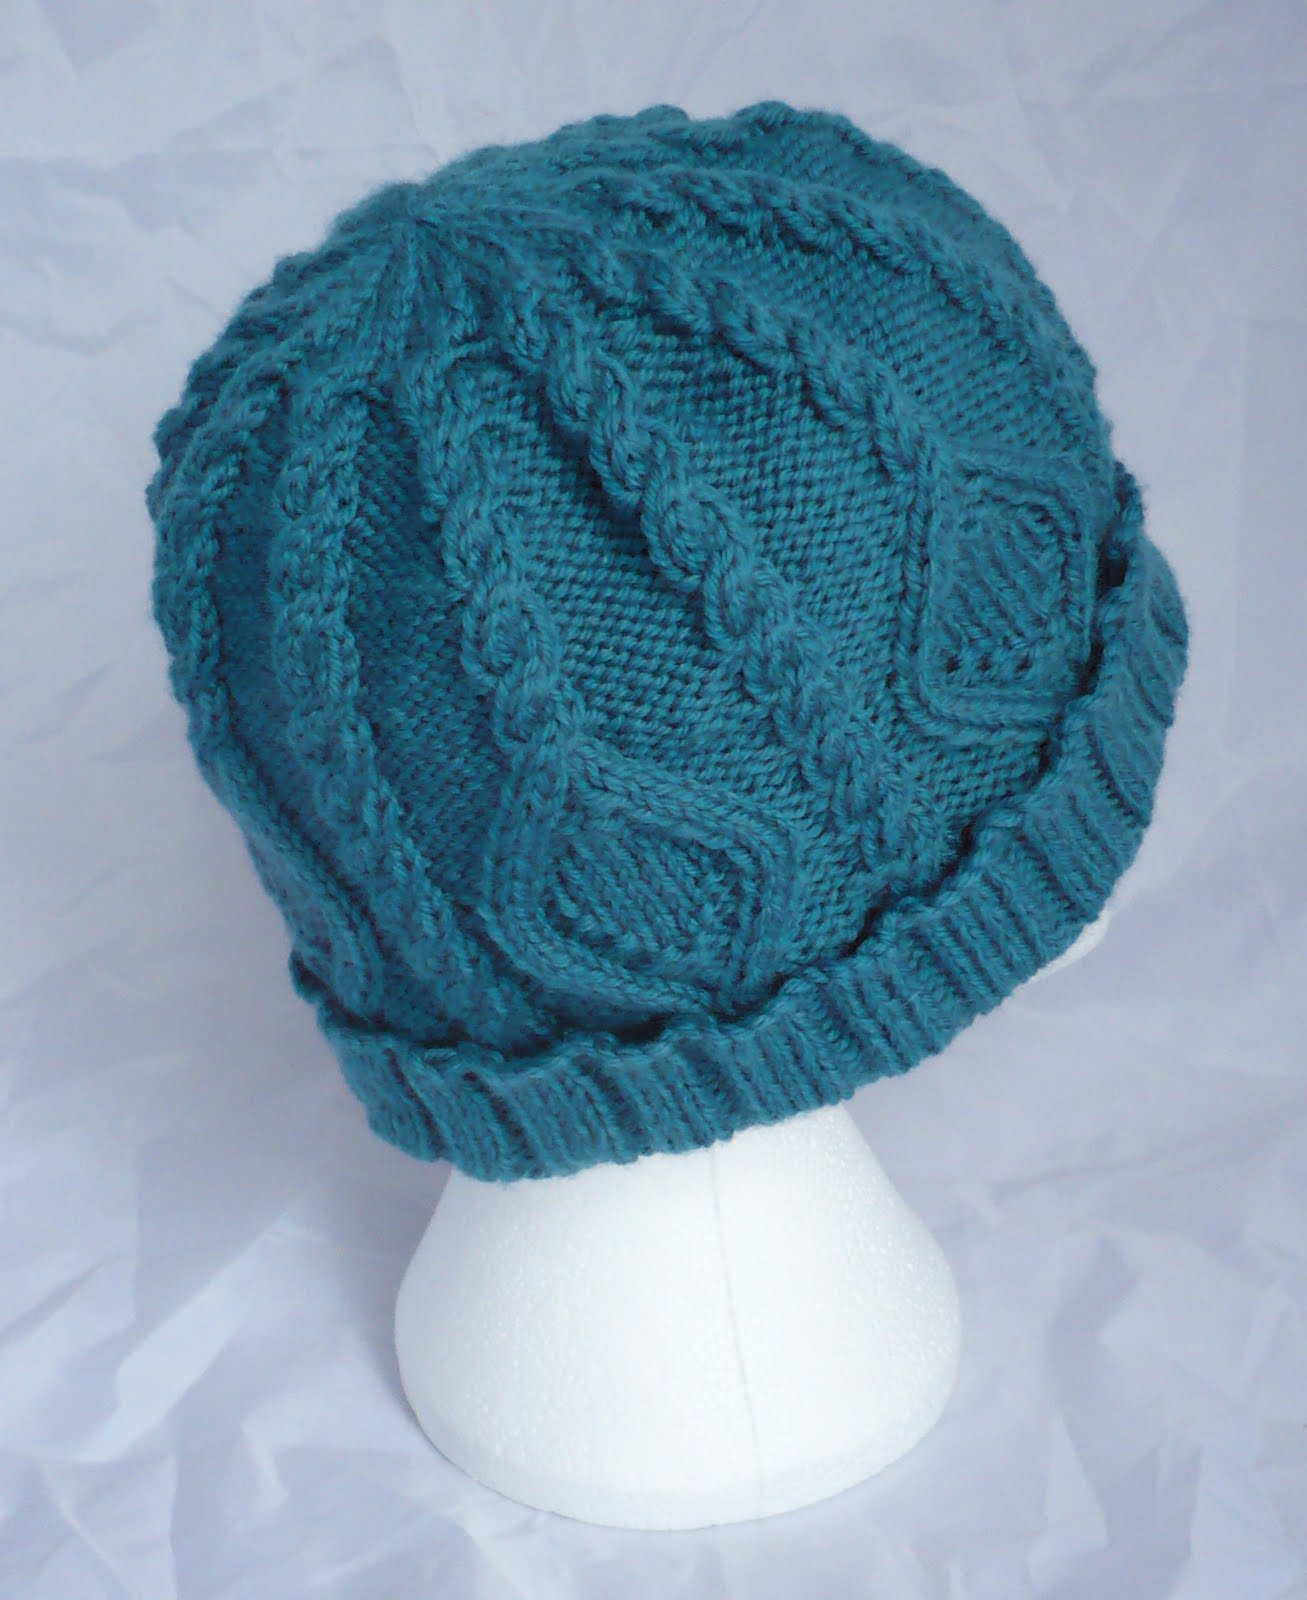 Knitting Cables Without Cable Needle : Stitched together tutorial for knitting cables without a